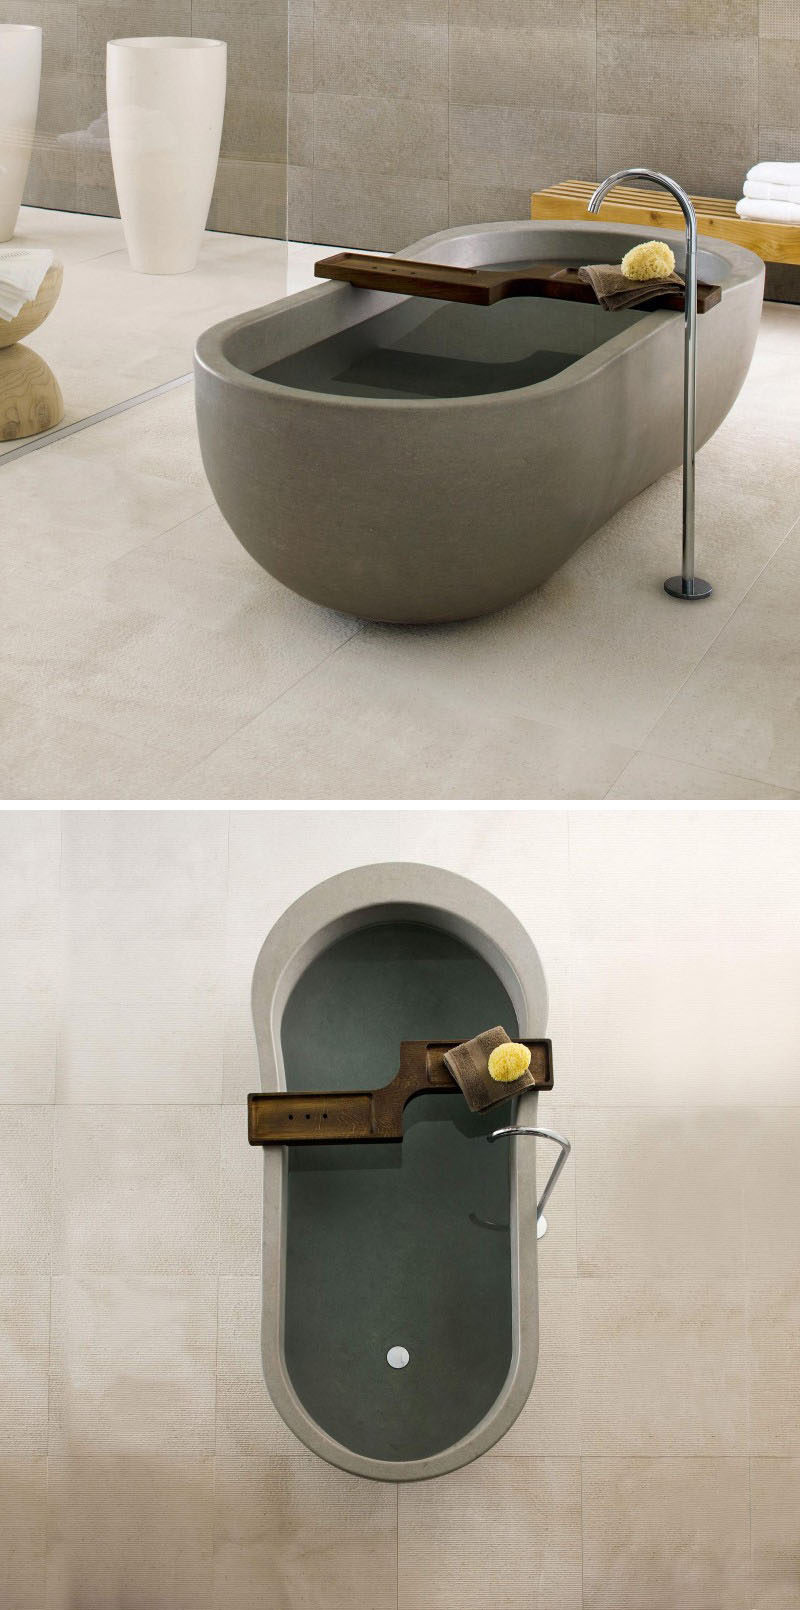 8 Stunning Examples Of Stone Bathtubs // The curvaceous ALONE tub from Neutra Design, is created from a single block of stone using state-of-the-art technologies